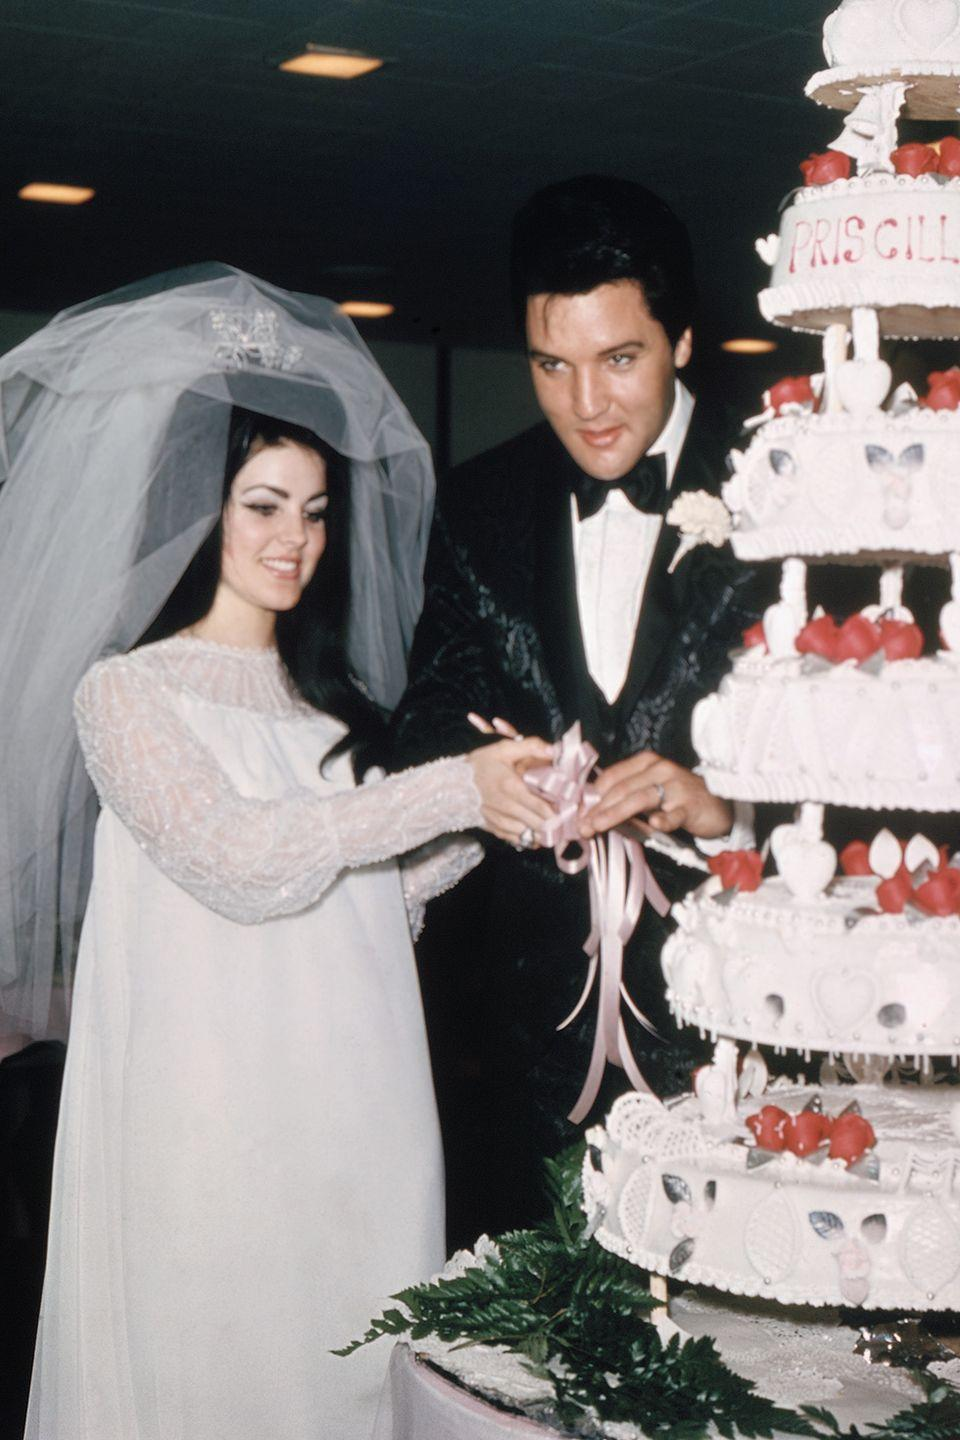 <p>Priscilla Presley designed her own white organza gown — fit for marrying The King. It had long lace sleeves and a three-quarter length veil that was secured by a rhinestone crown. Her now famous bouffant hairdo nearly rivaled Elvis Presley's pompadour.</p>